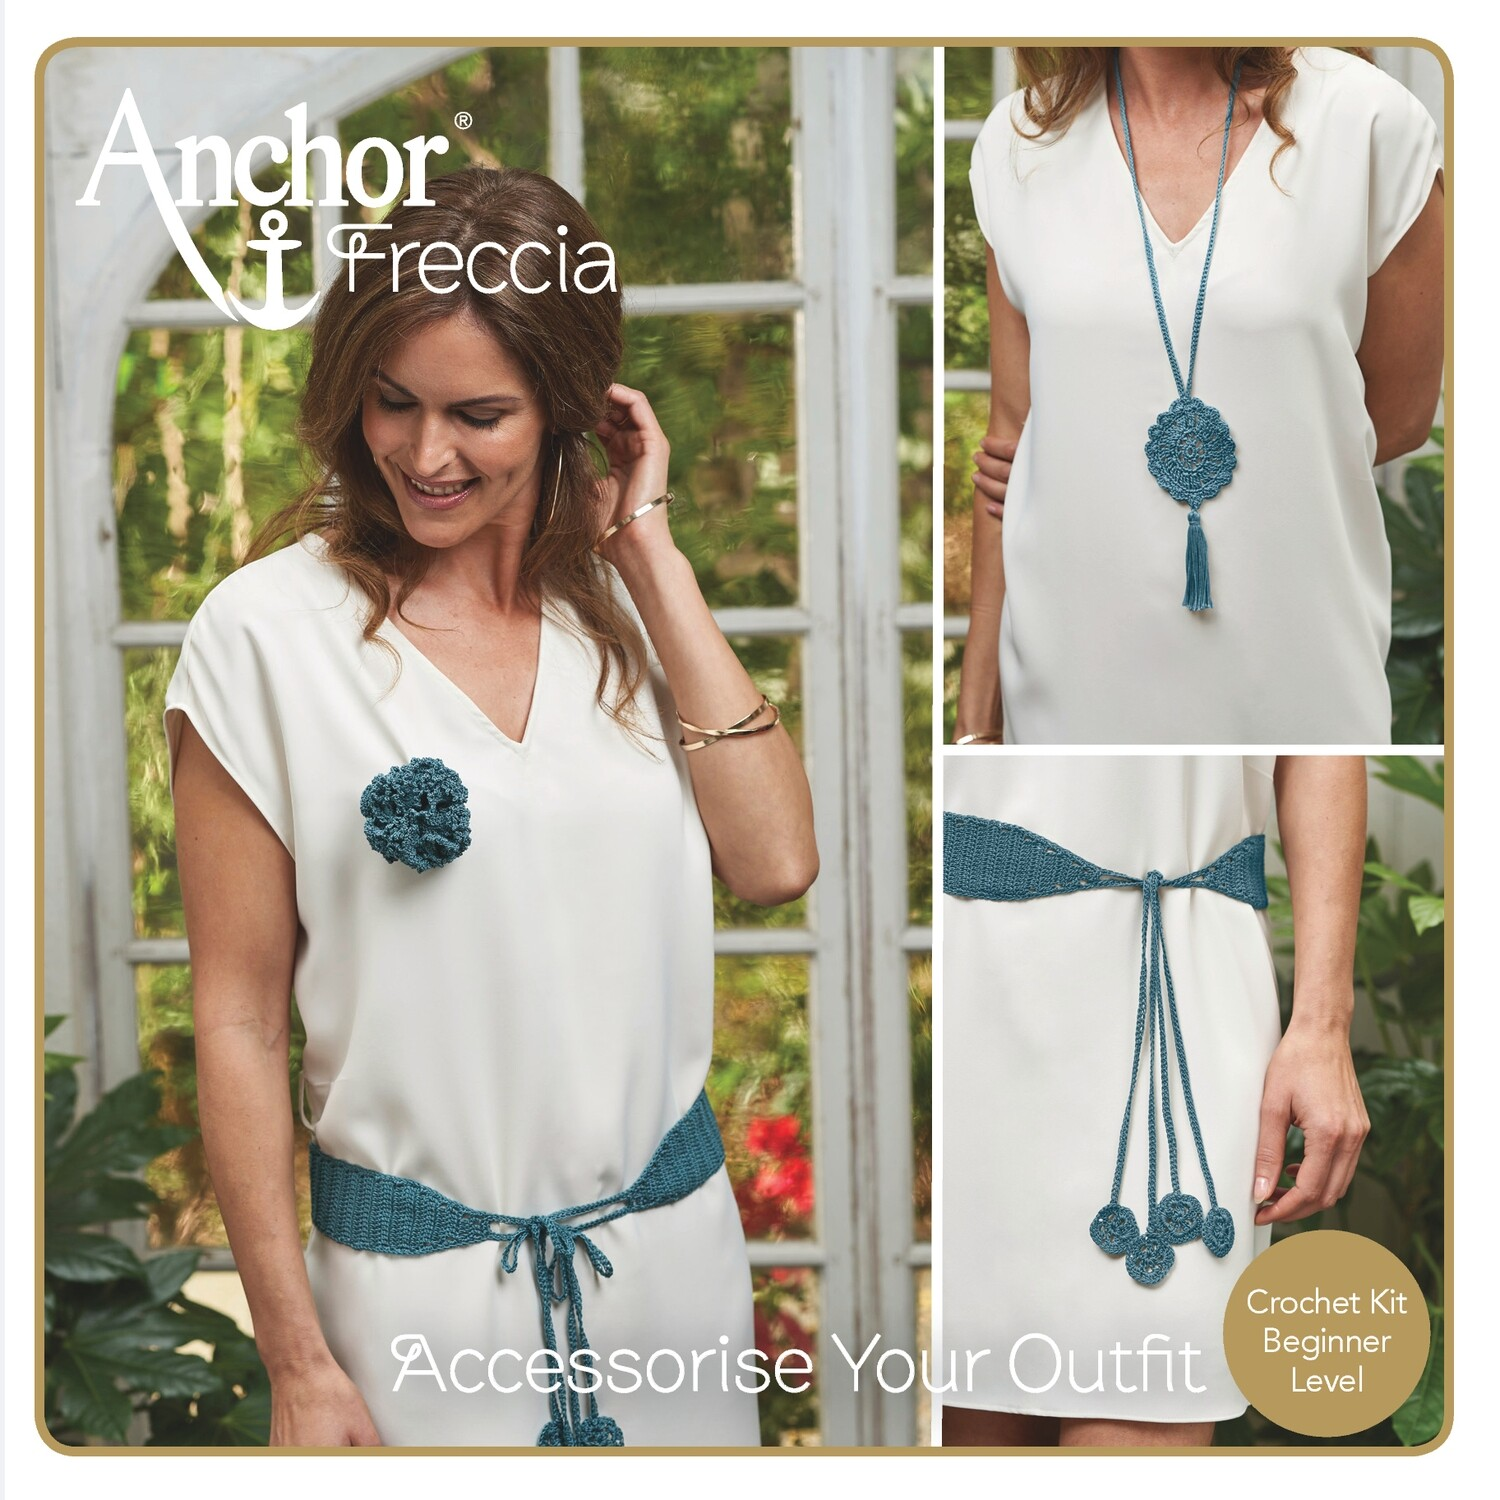 Anchor Crochet Kit - Accessorize Your Outfit: Belt, Necklace & Brooch